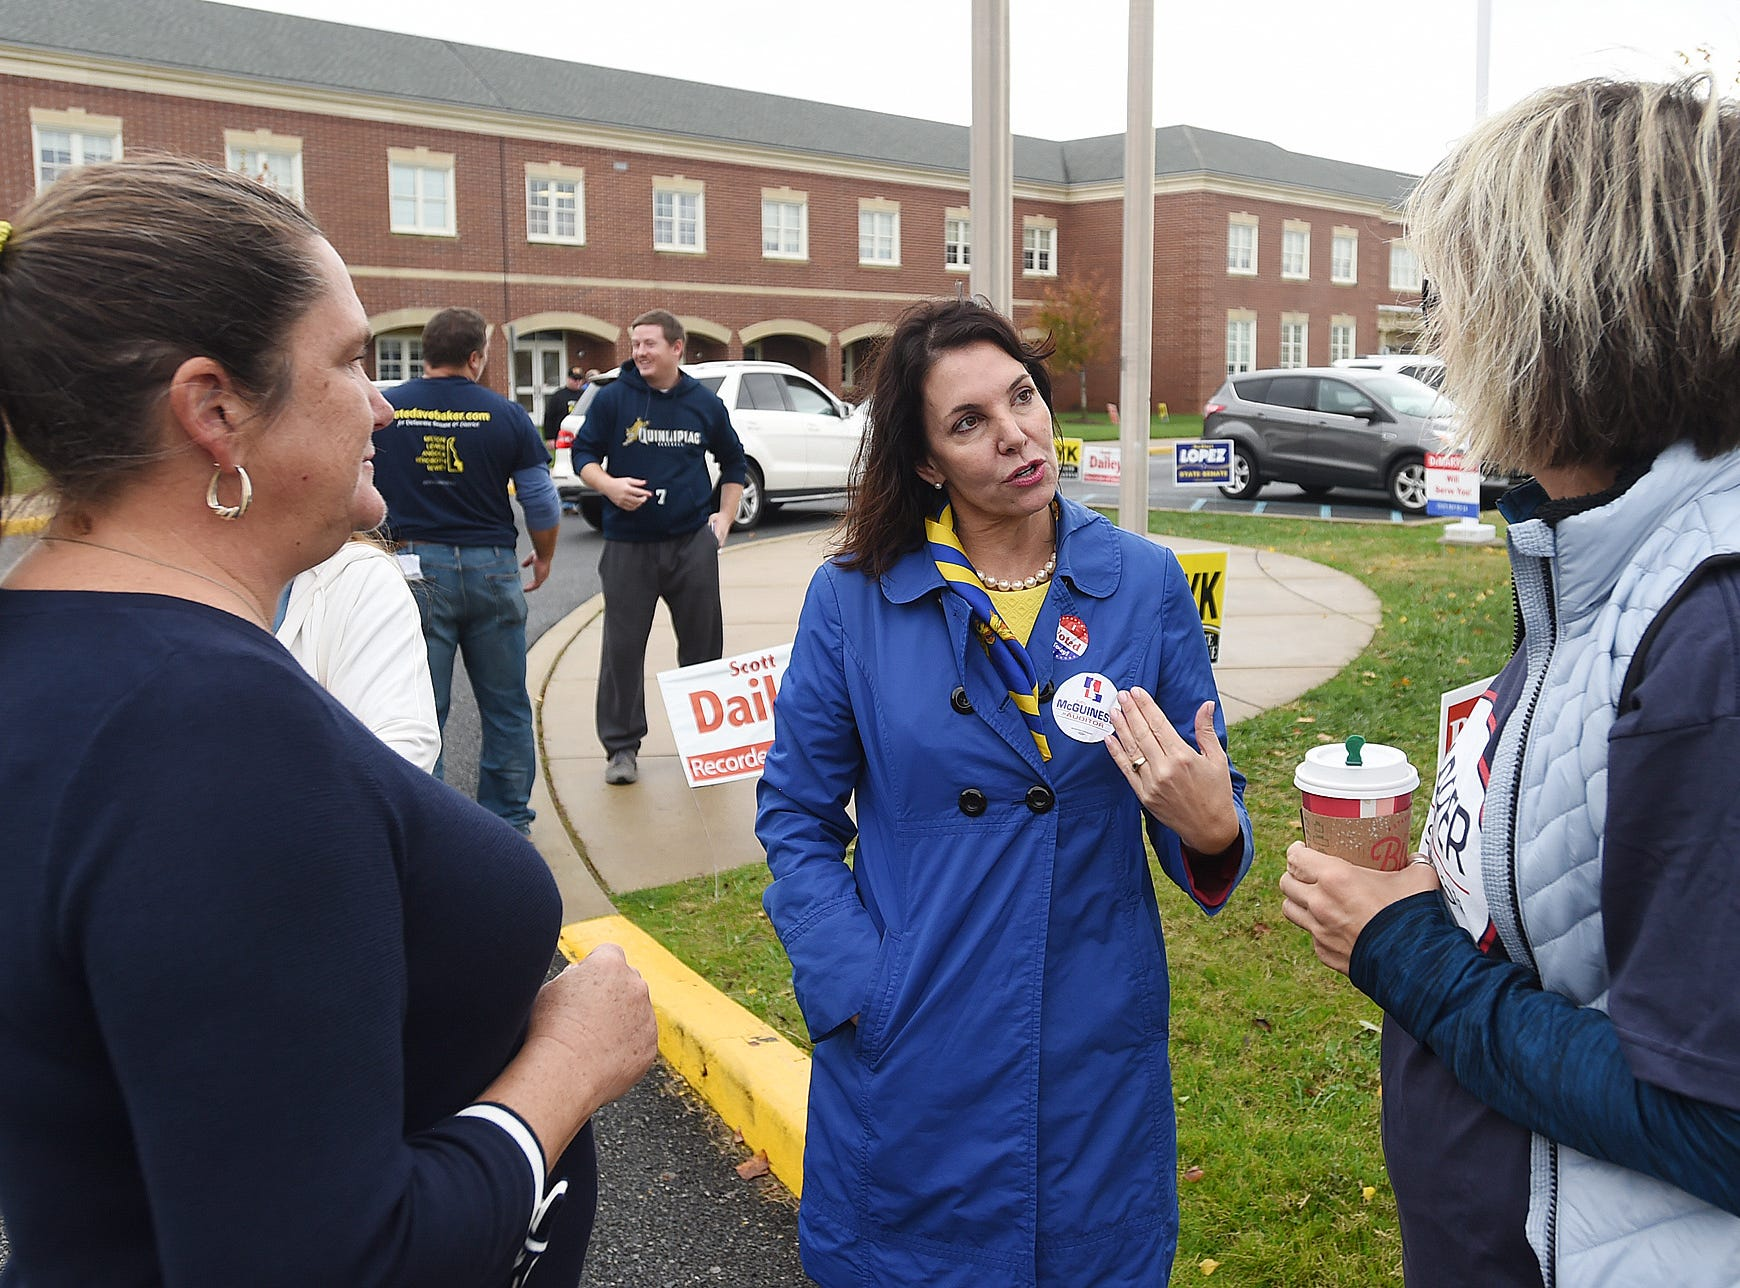 State Auditor candidate Kathy McGuiness greets voters at Cape Henlopen High School near Lewes as turnout in eastern Sussex County has been steady at polling places as candidates still seek supporters for their support.